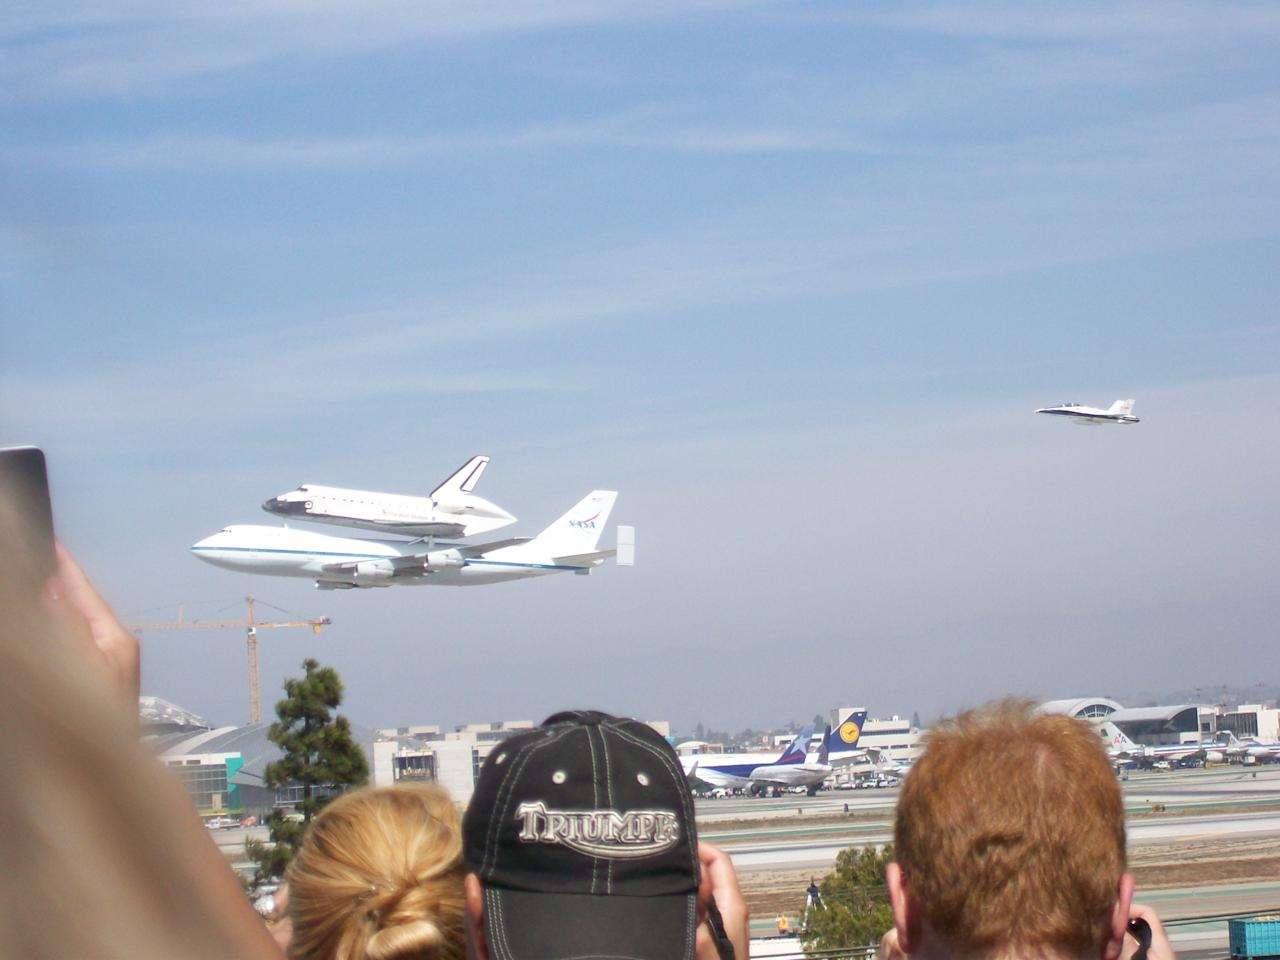 The Endeavour does a fly by at Los Angeles International Airport. Photo courtesy of Farhan Hashim.